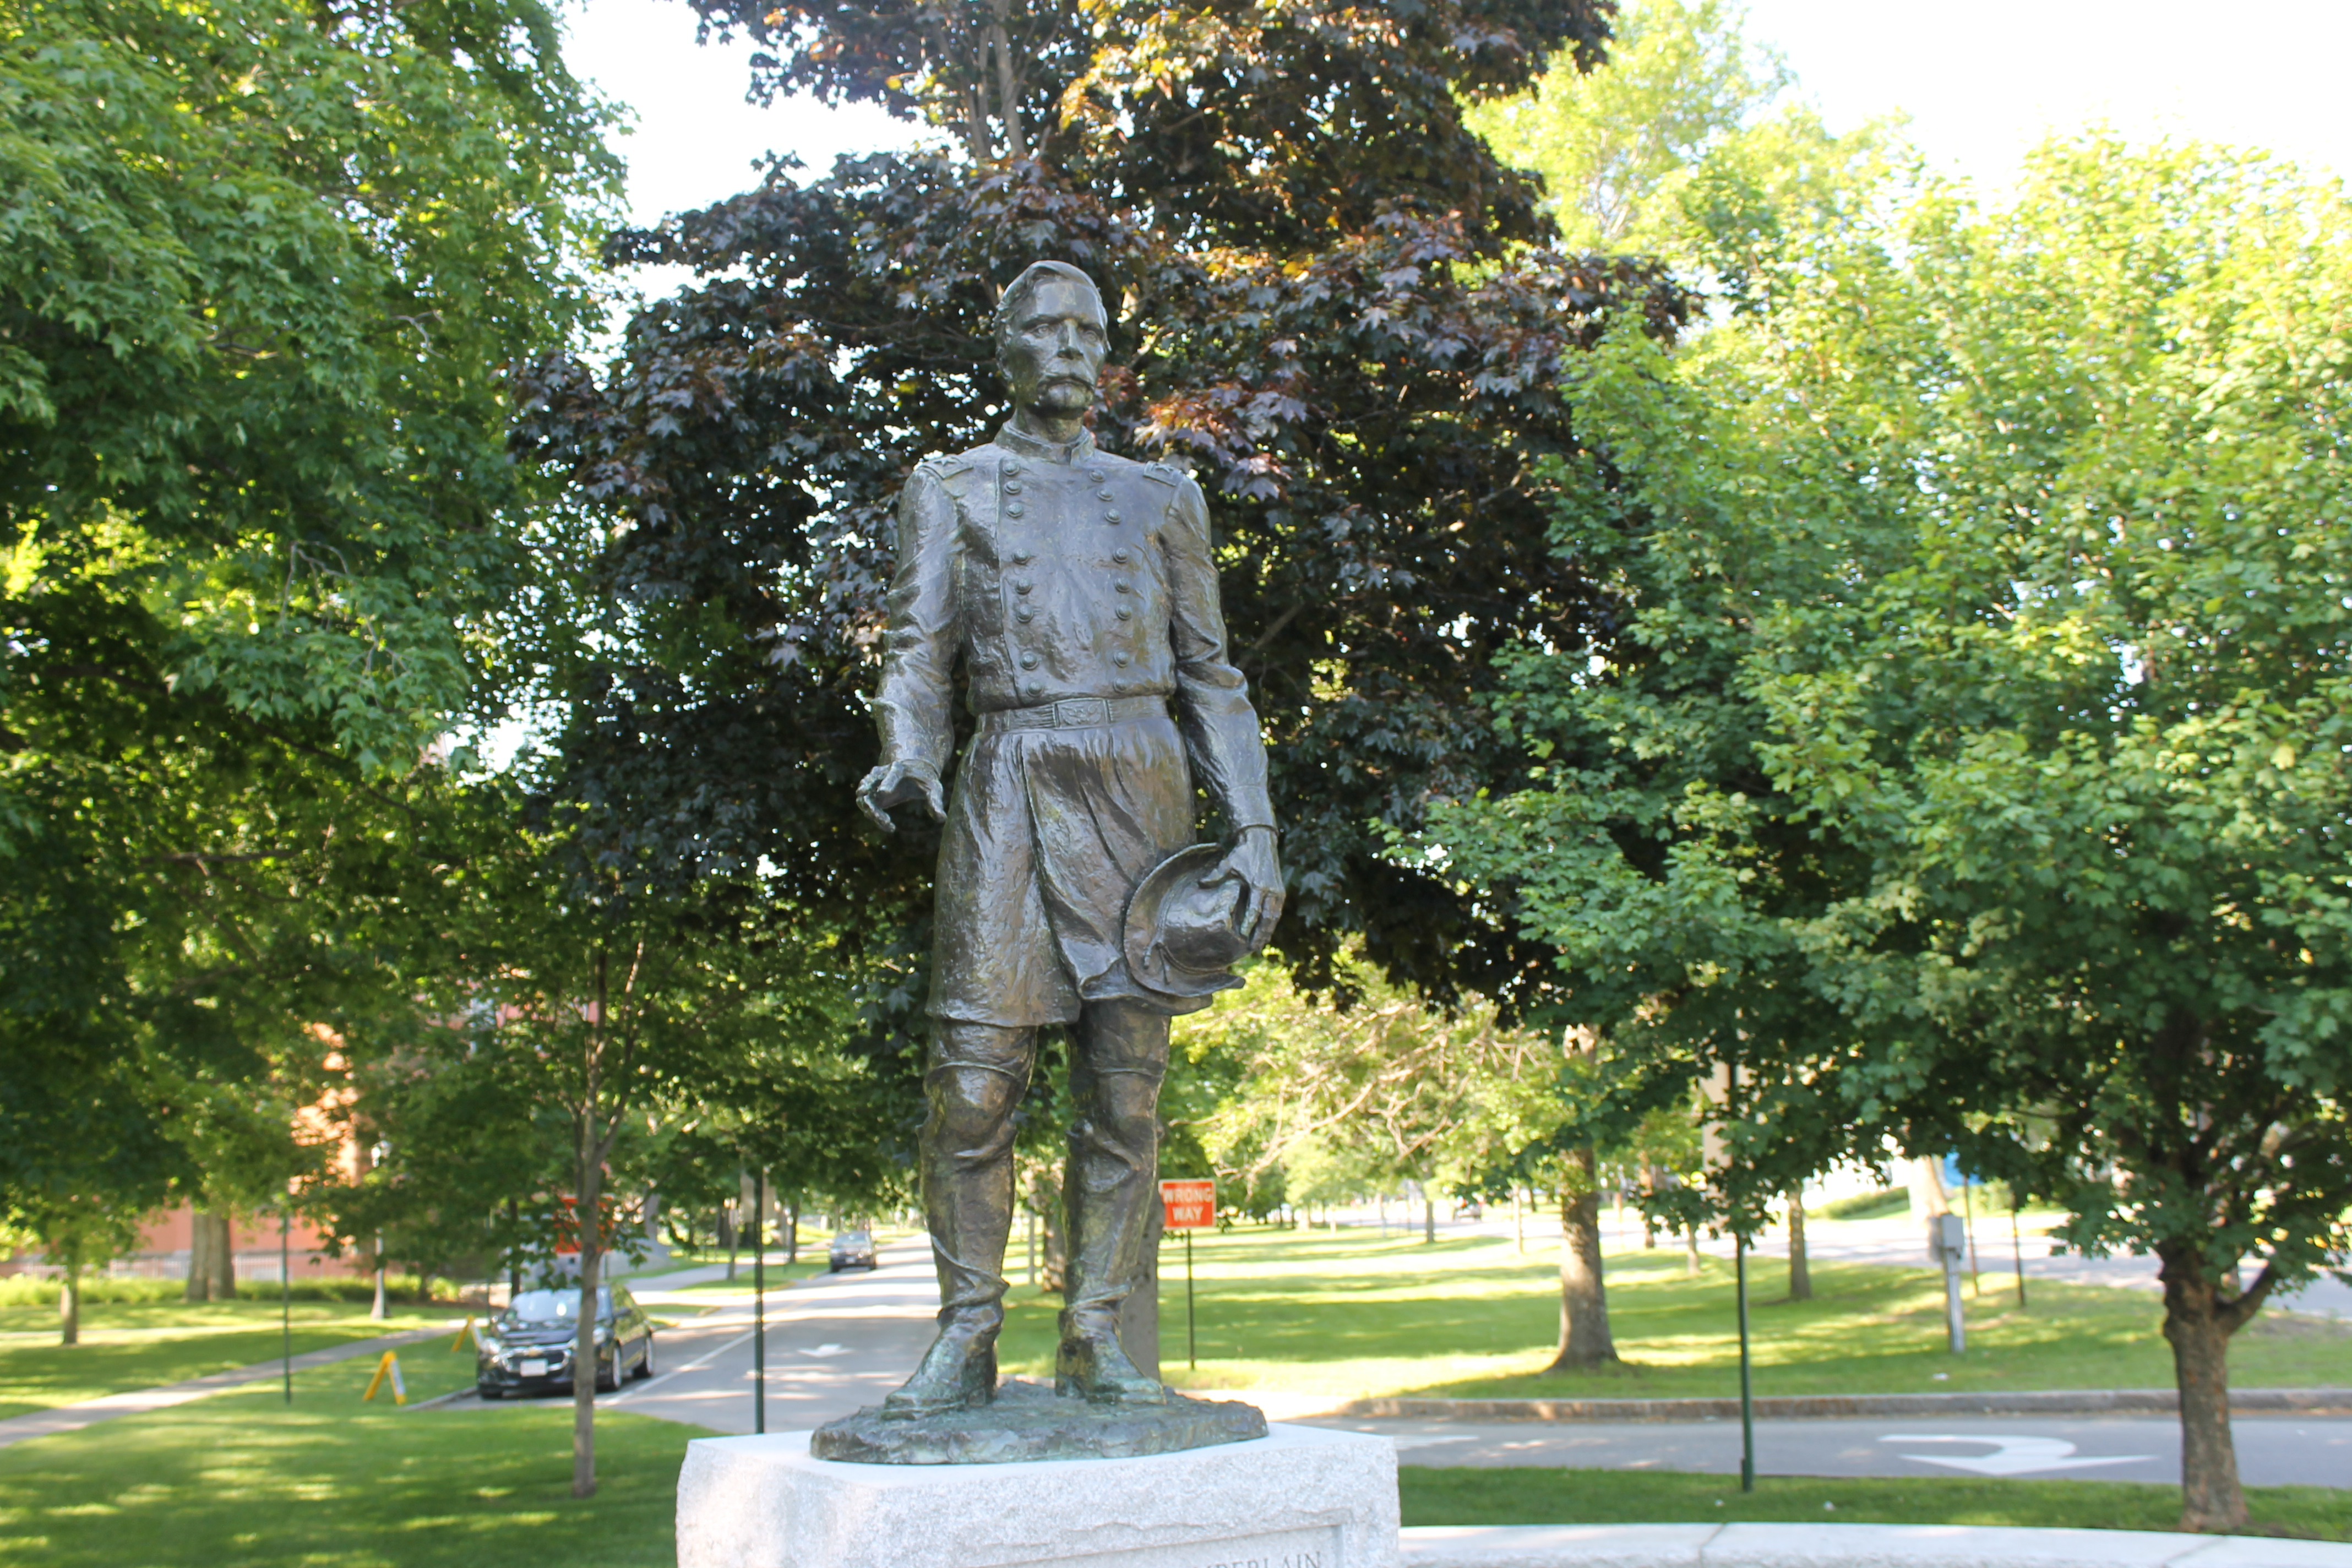 A famous statue of Joshua Chamberlain on the Bowdoin campus, photograph by Billy Hathorn of Wikimedia Commons